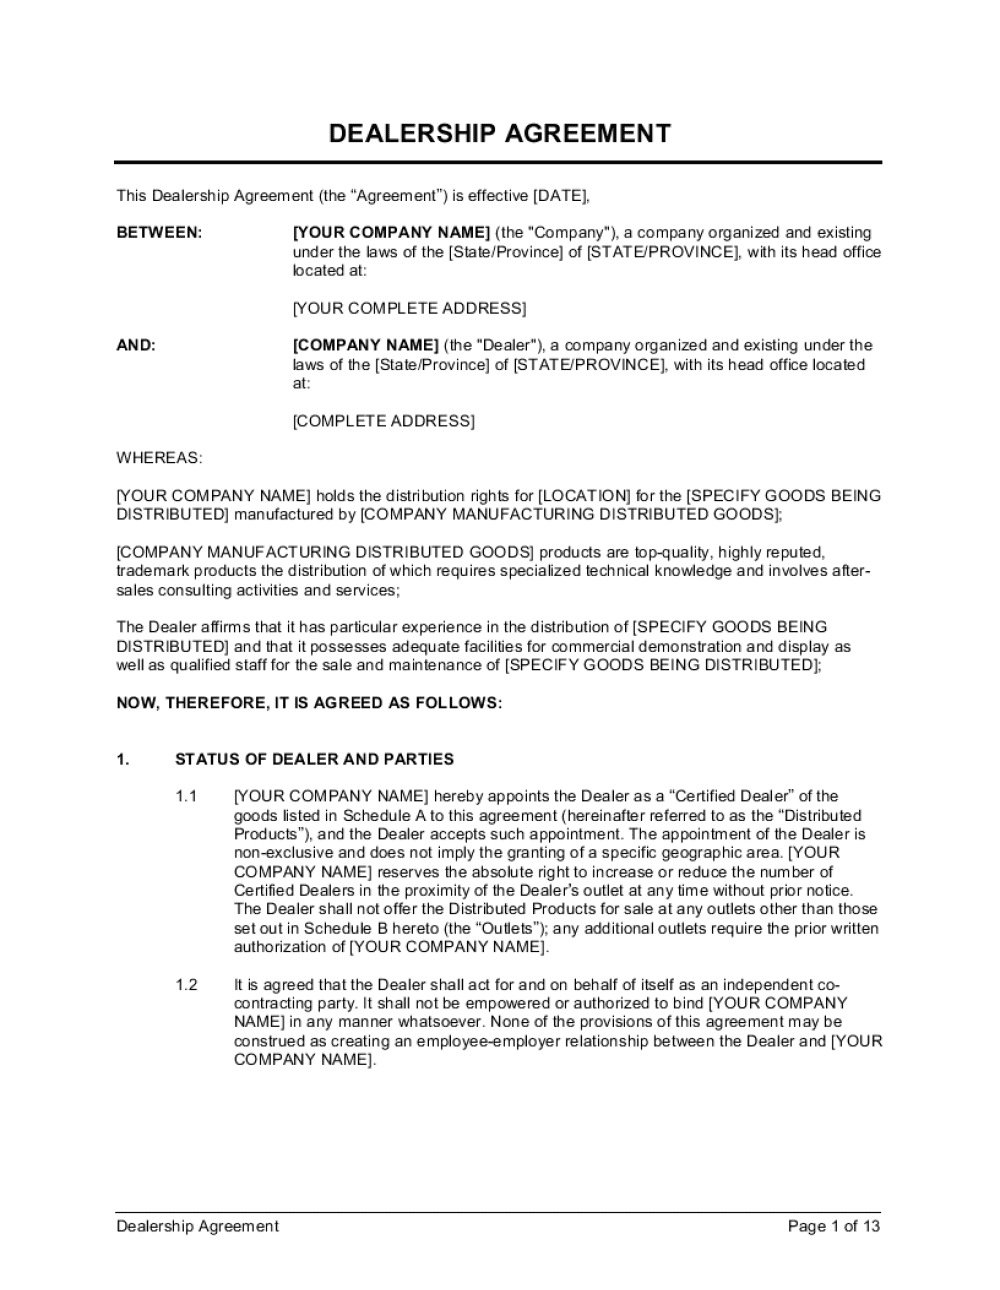 Business-in-a-Box's Dealership Agreement Template